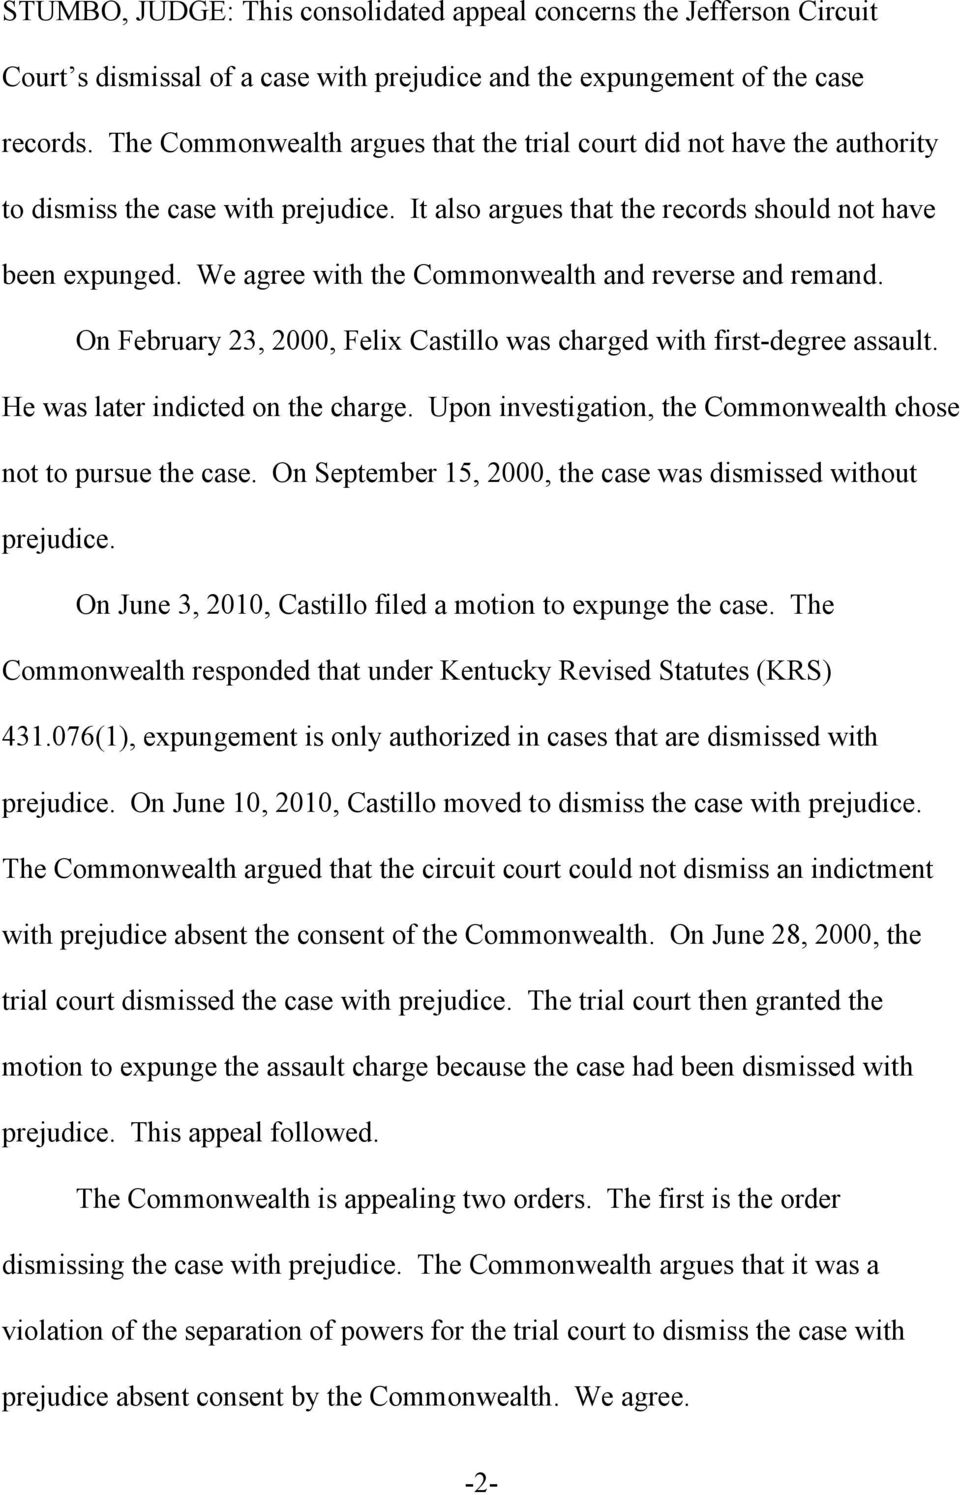 We agree with the Commonwealth and reverse and remand. On February 23, 2000, Felix Castillo was charged with first-degree assault. He was later indicted on the charge.